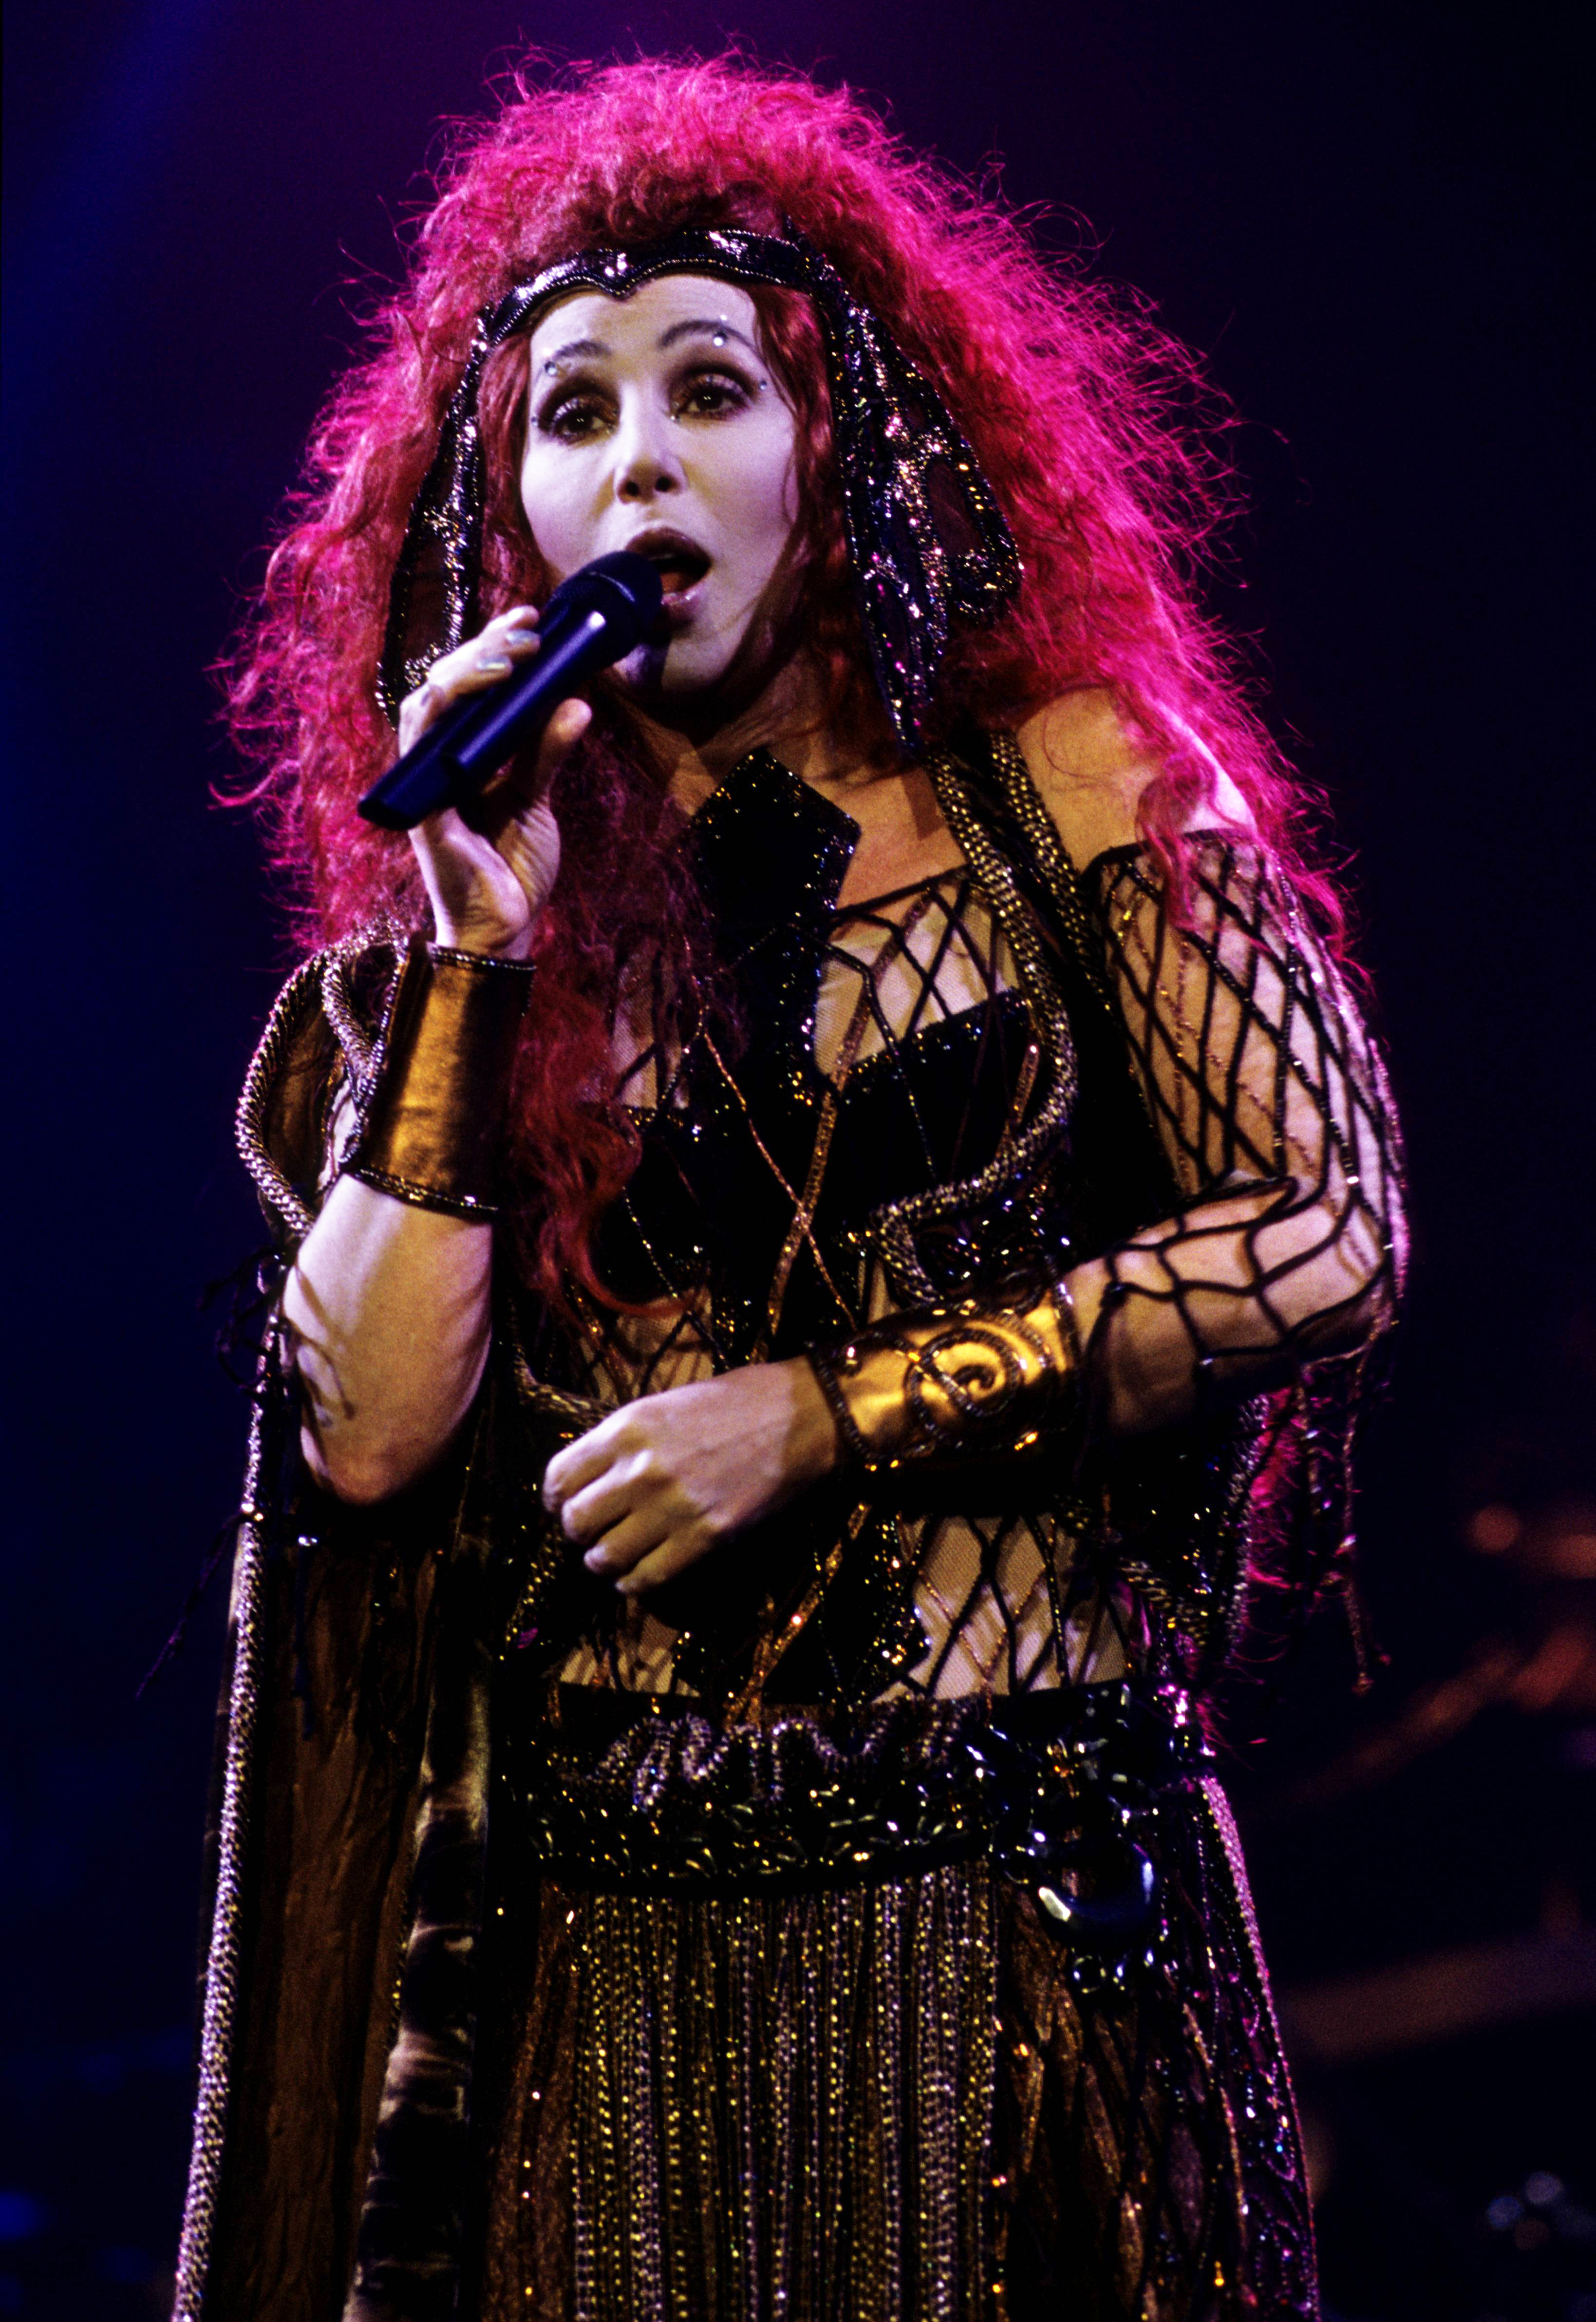 Cher performs during her  Do You Believe?  tour in the U.K. in 1999.